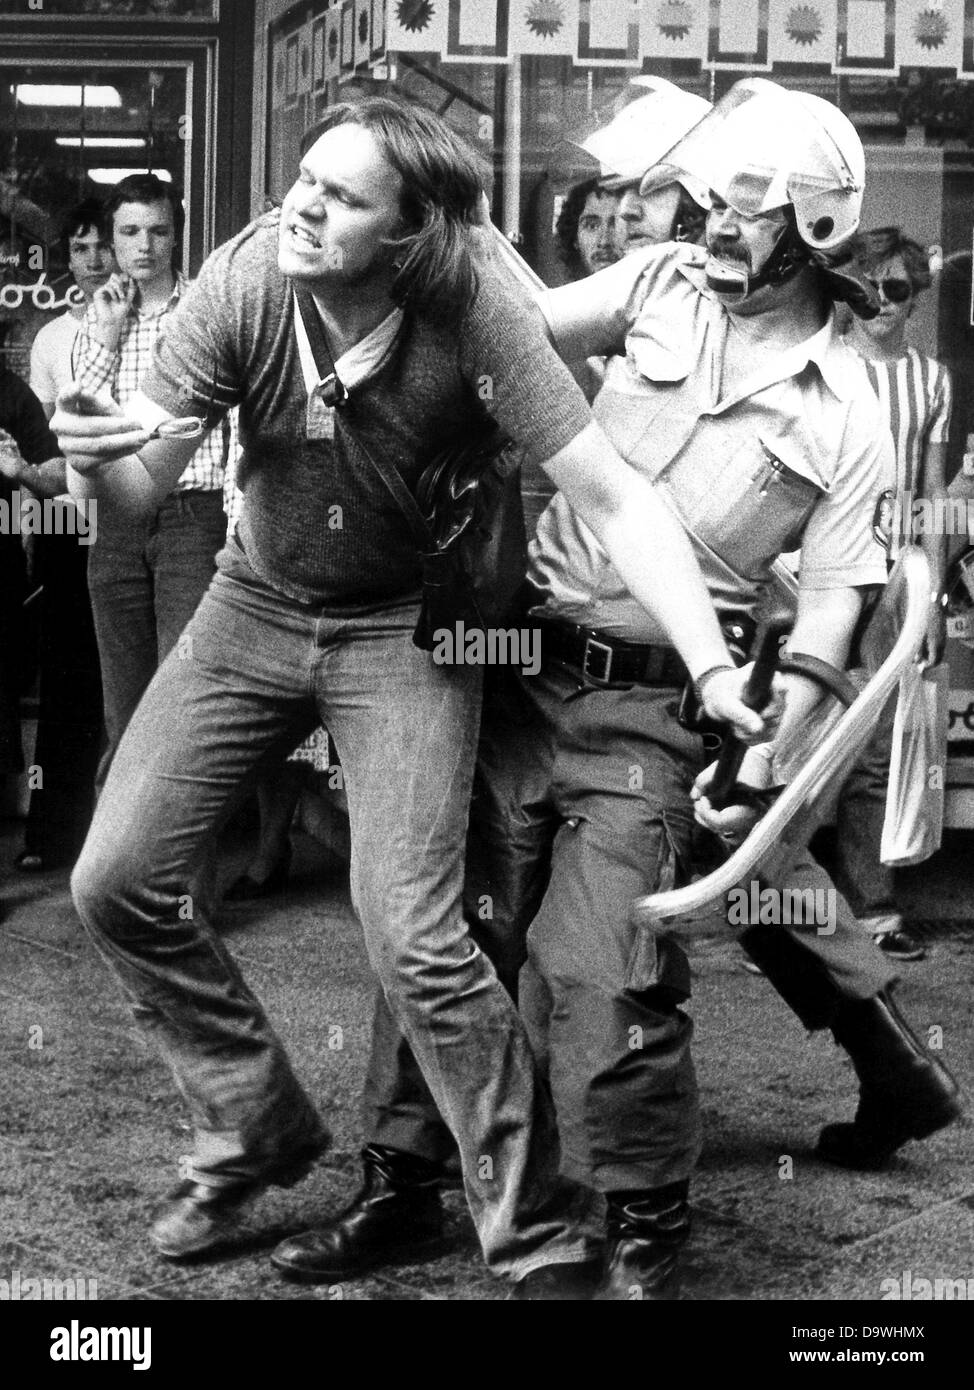 """Demonstrators and police have one of the """"most brutal conflicts"""" in the last years on the 10th of May in 1976 in Stock Photo"""